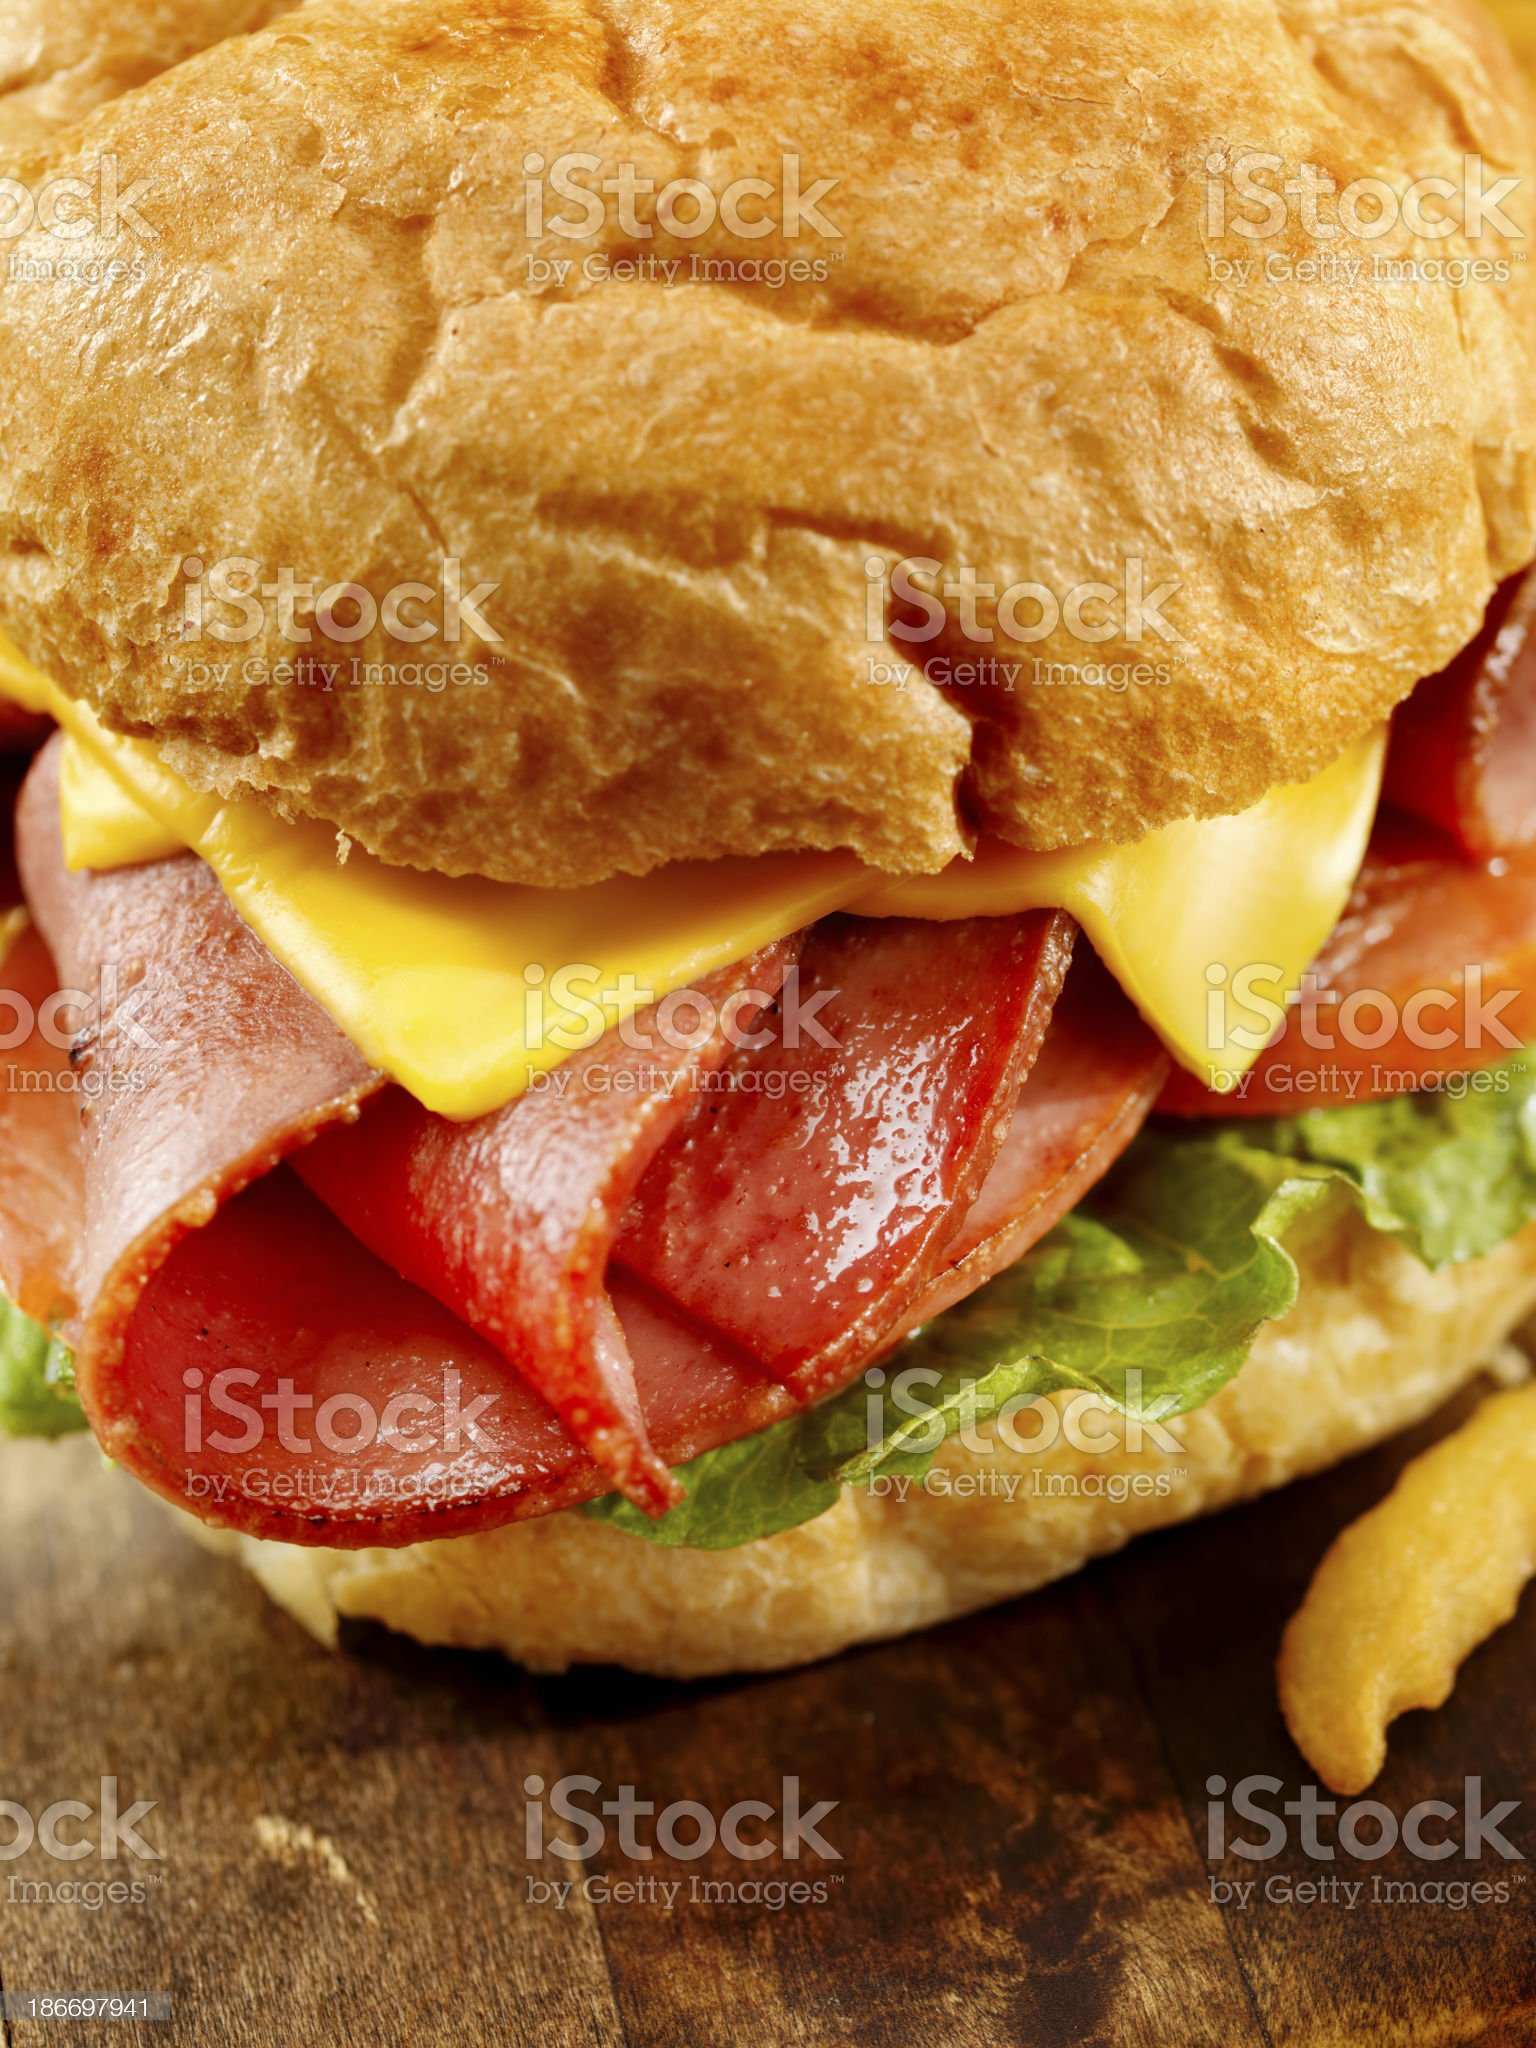 Fried Bologna Sandwich with Fries royalty-free stock photo